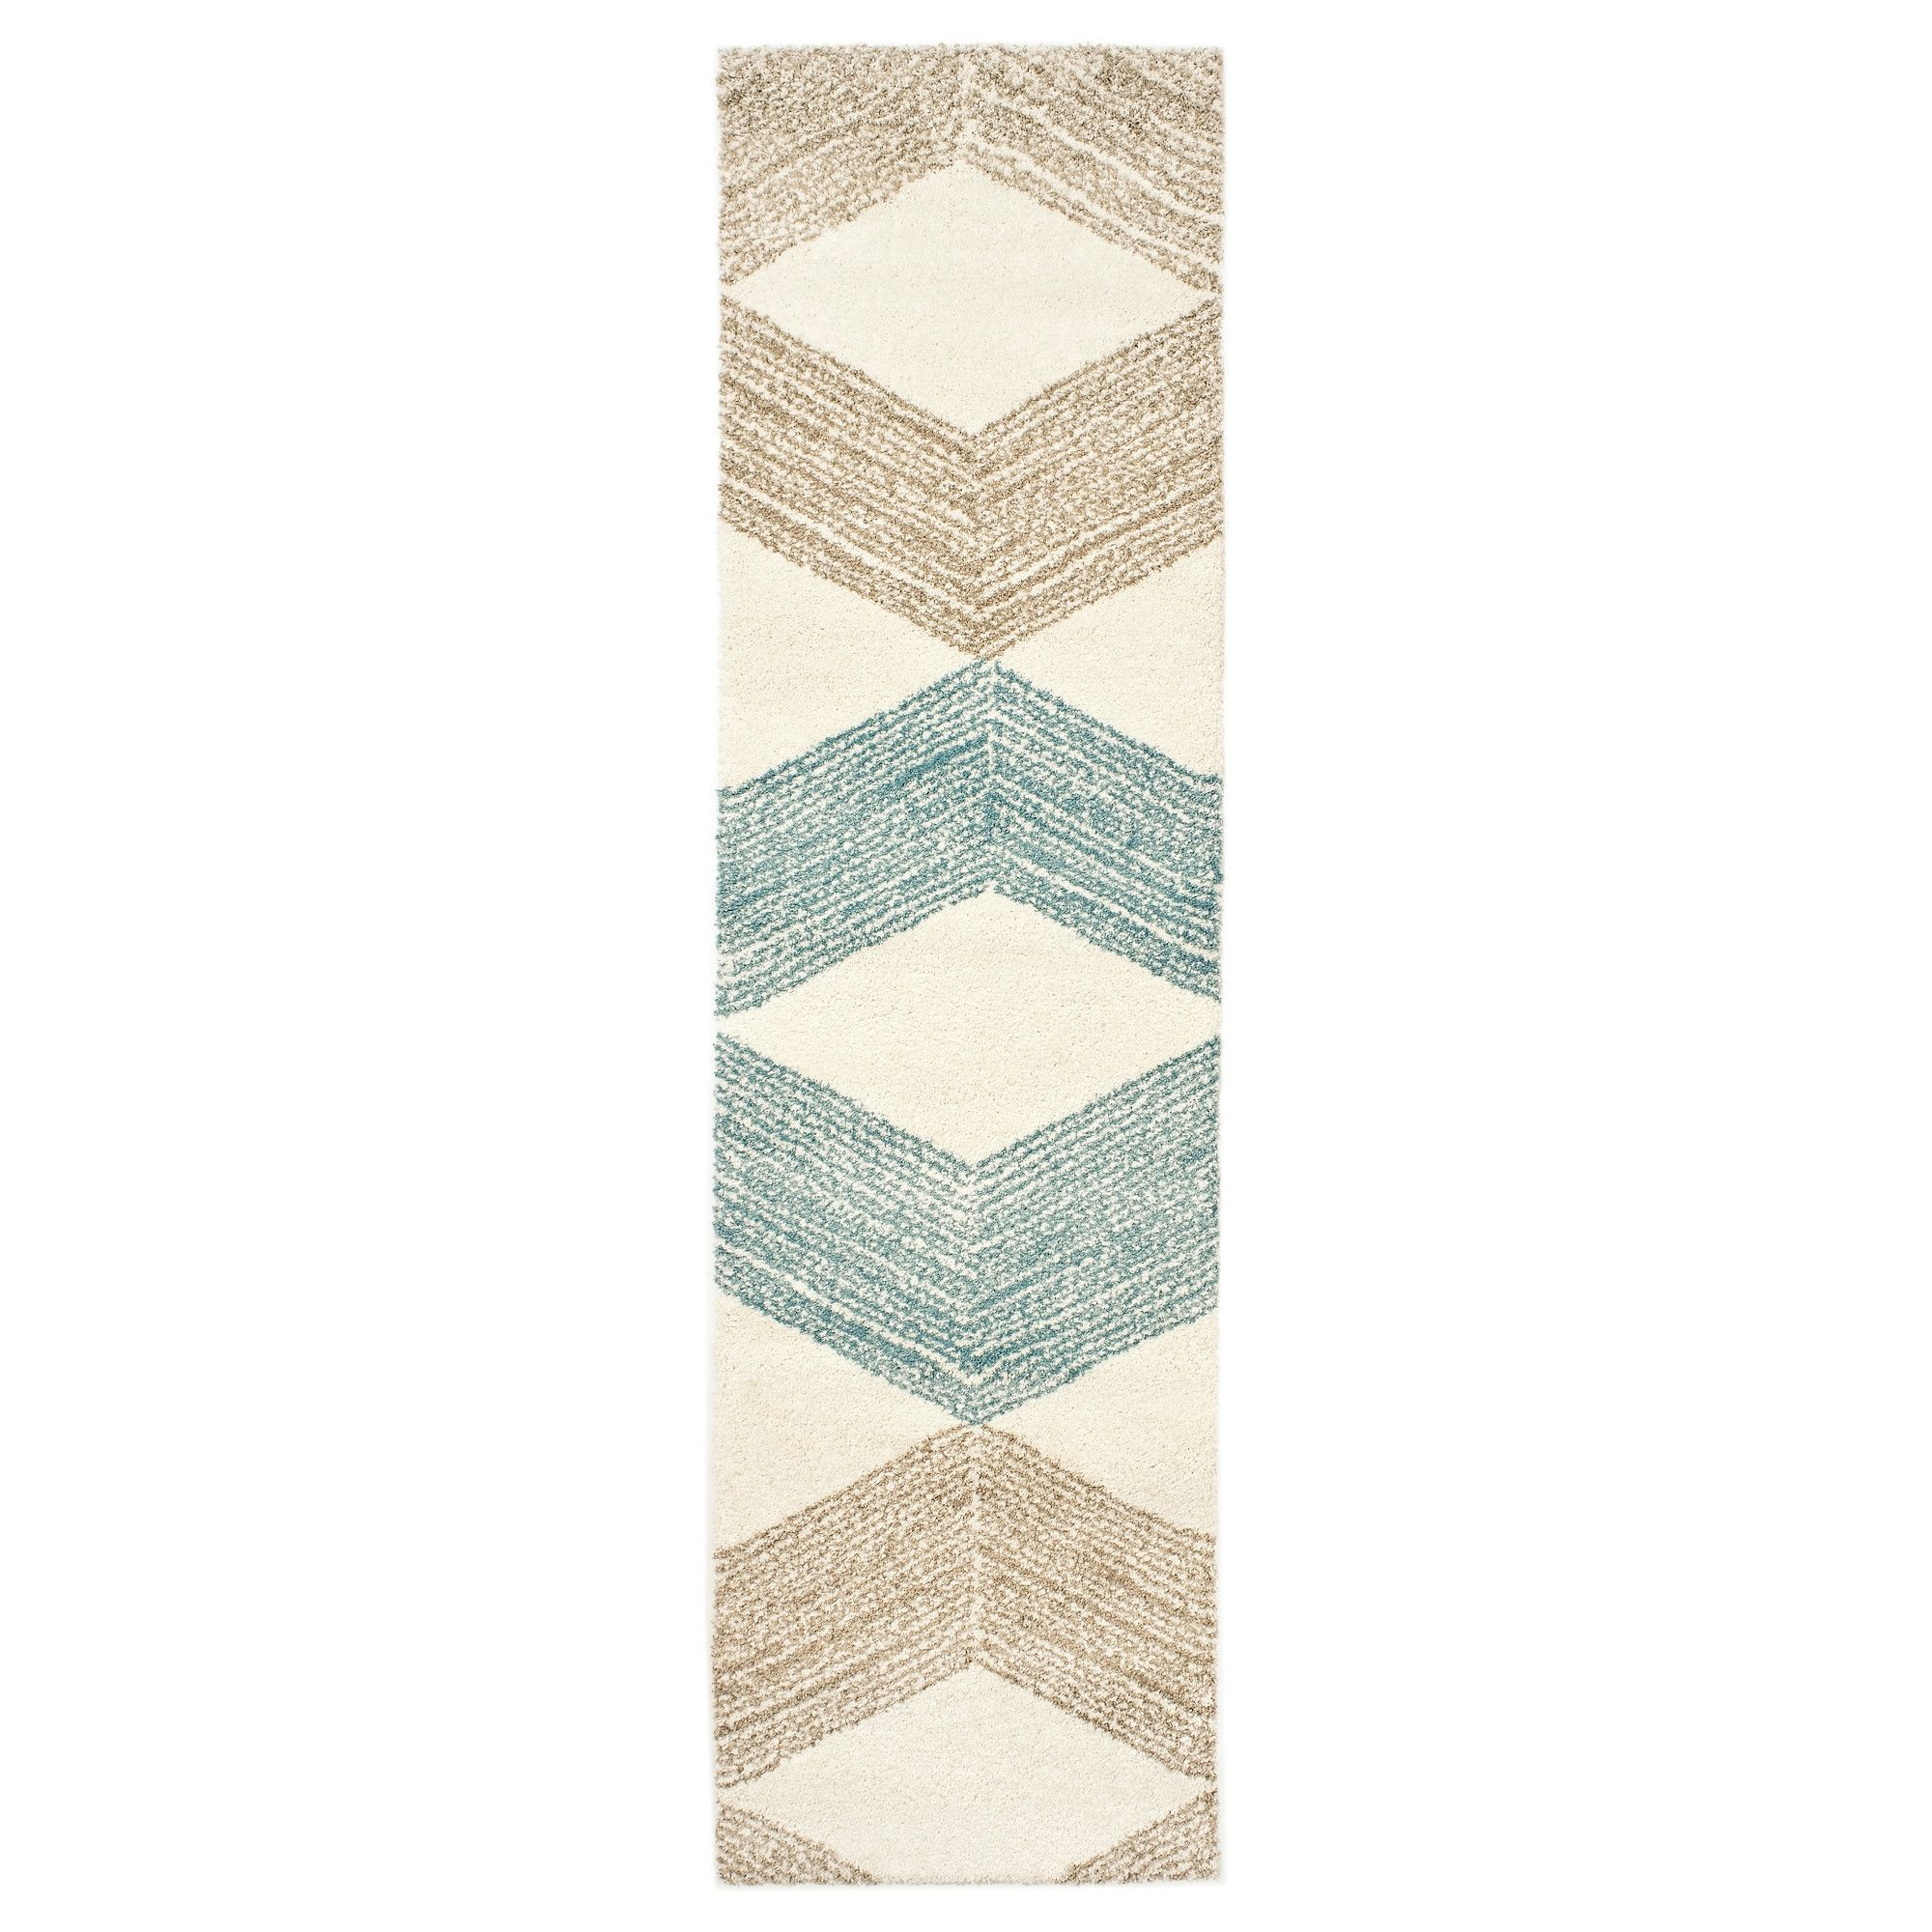 MARSLEV Rug High Pile Turquoise Beige Bedroom RugsLiving Room